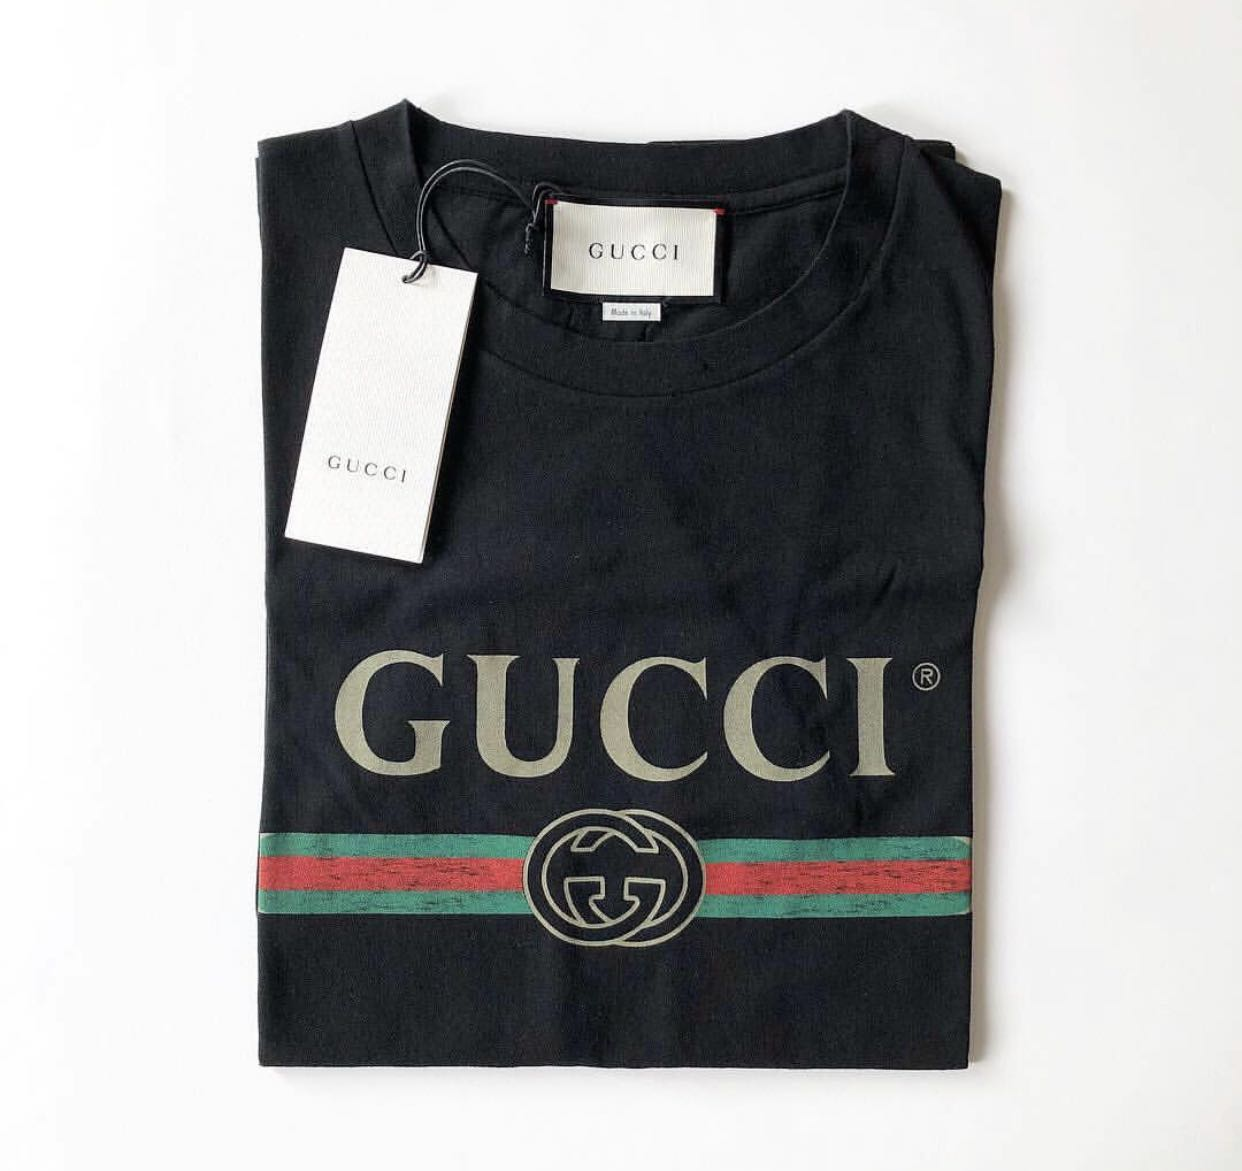 77dbe8375 Gucci tee shirt [SALE], Luxury, Apparel, Women's on Carousell